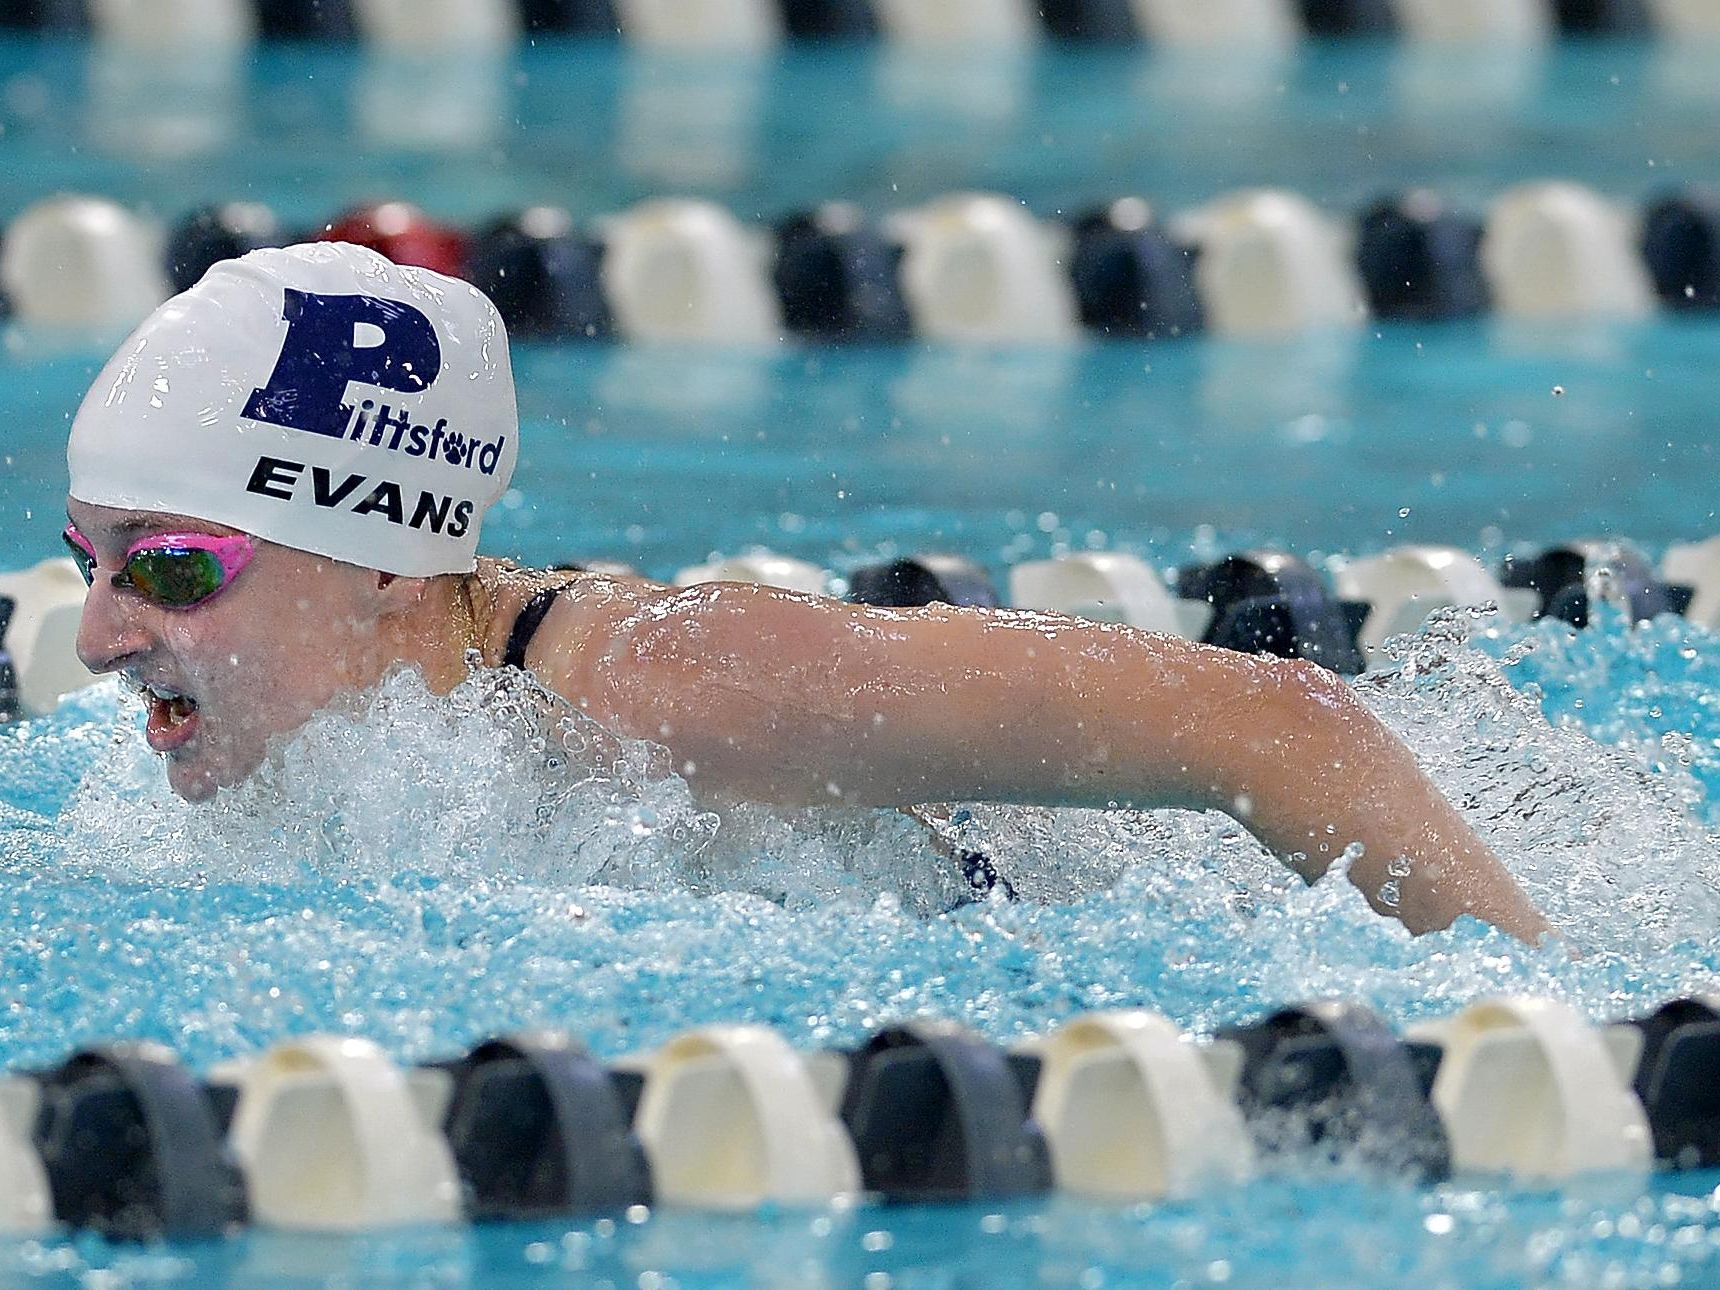 Pittsford's Becca Evans wins the 100 yard butterfly with a time of 59.60 during regular season meet against Victor at Pittsford Mendon High School on Thursday, Sept. 8, 2016.